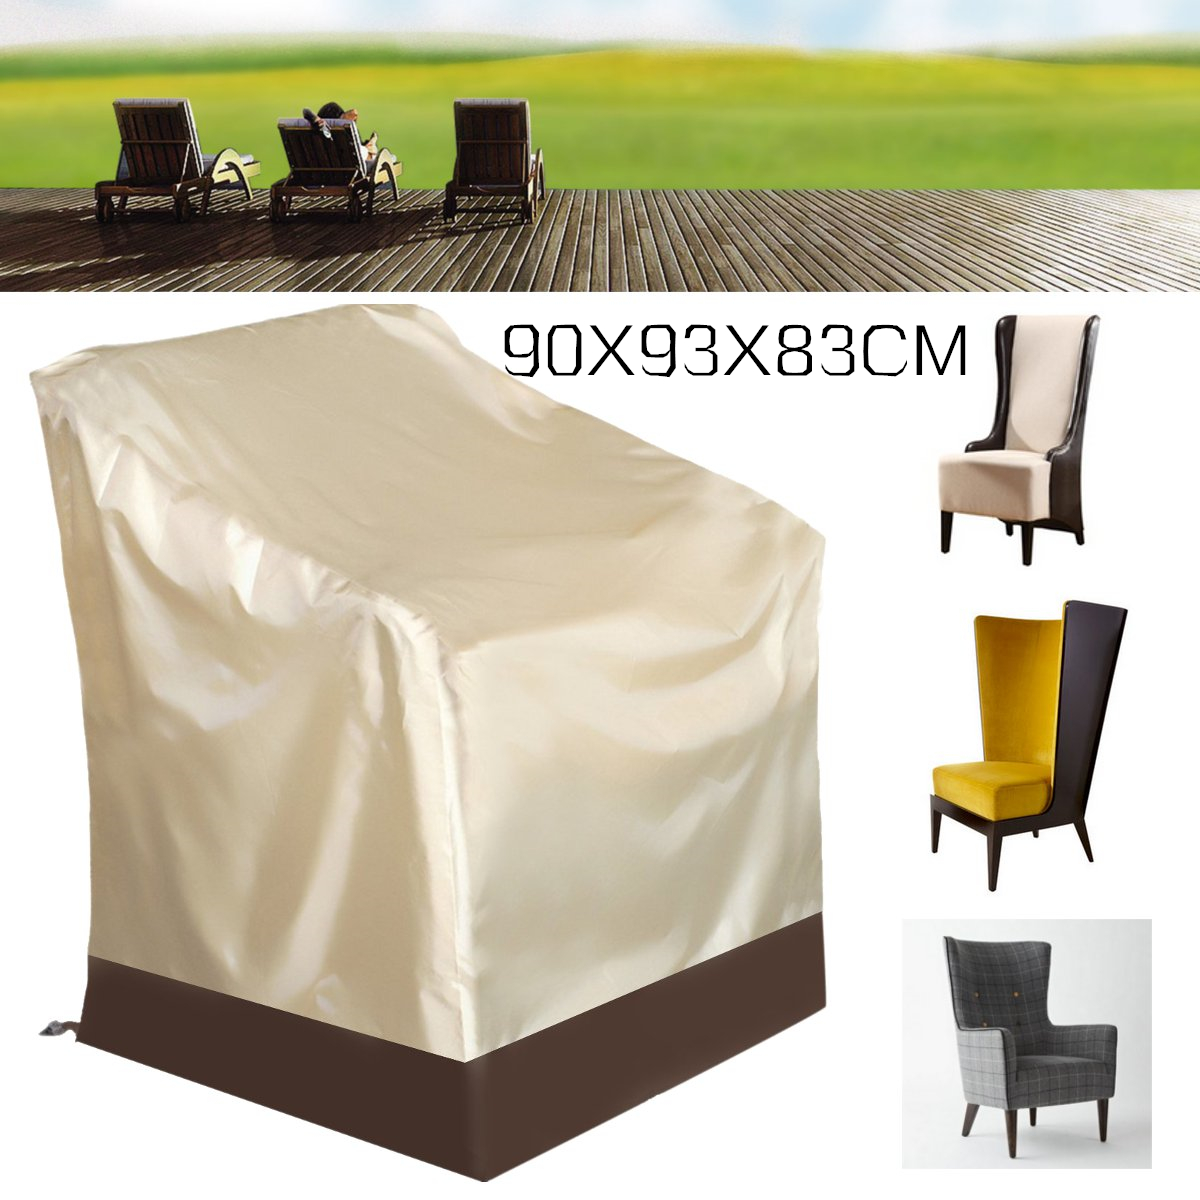 Awe Inspiring Patio Furniture Covers Walmart Canada Gmtry Best Dining Table And Chair Ideas Images Gmtryco